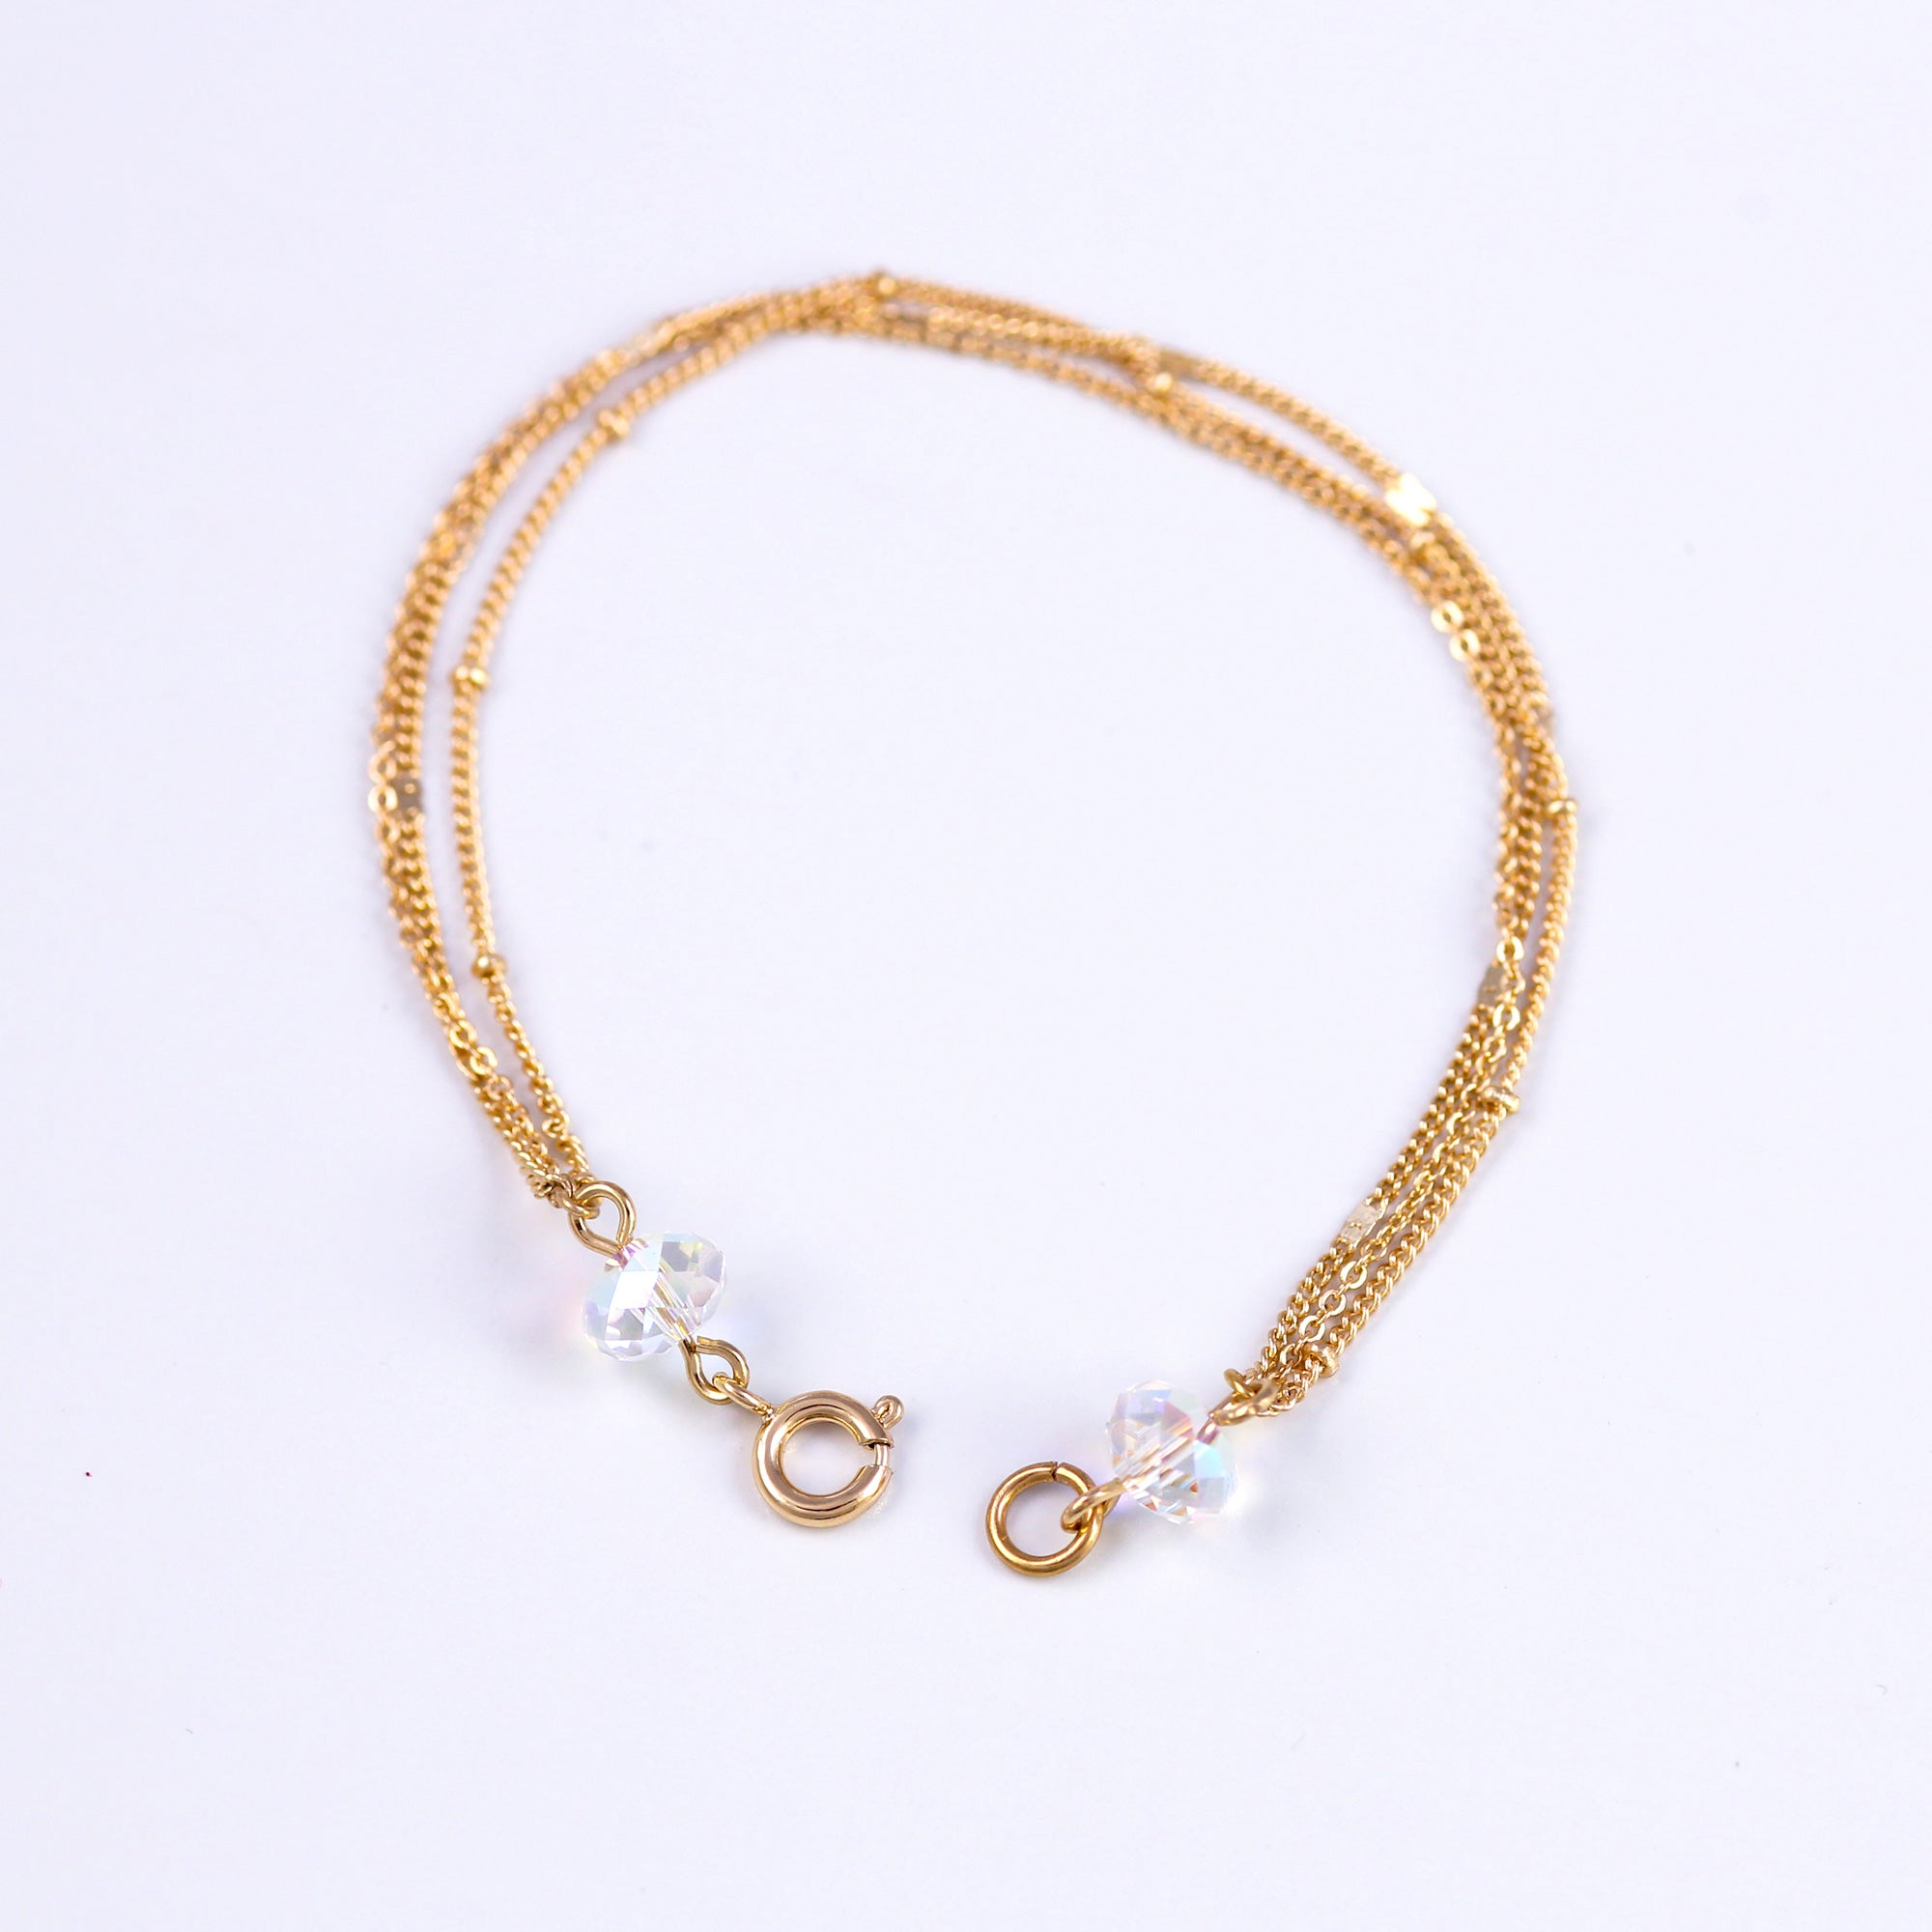 Gold & Iridescent Bead Bridal Satellite Bracelet